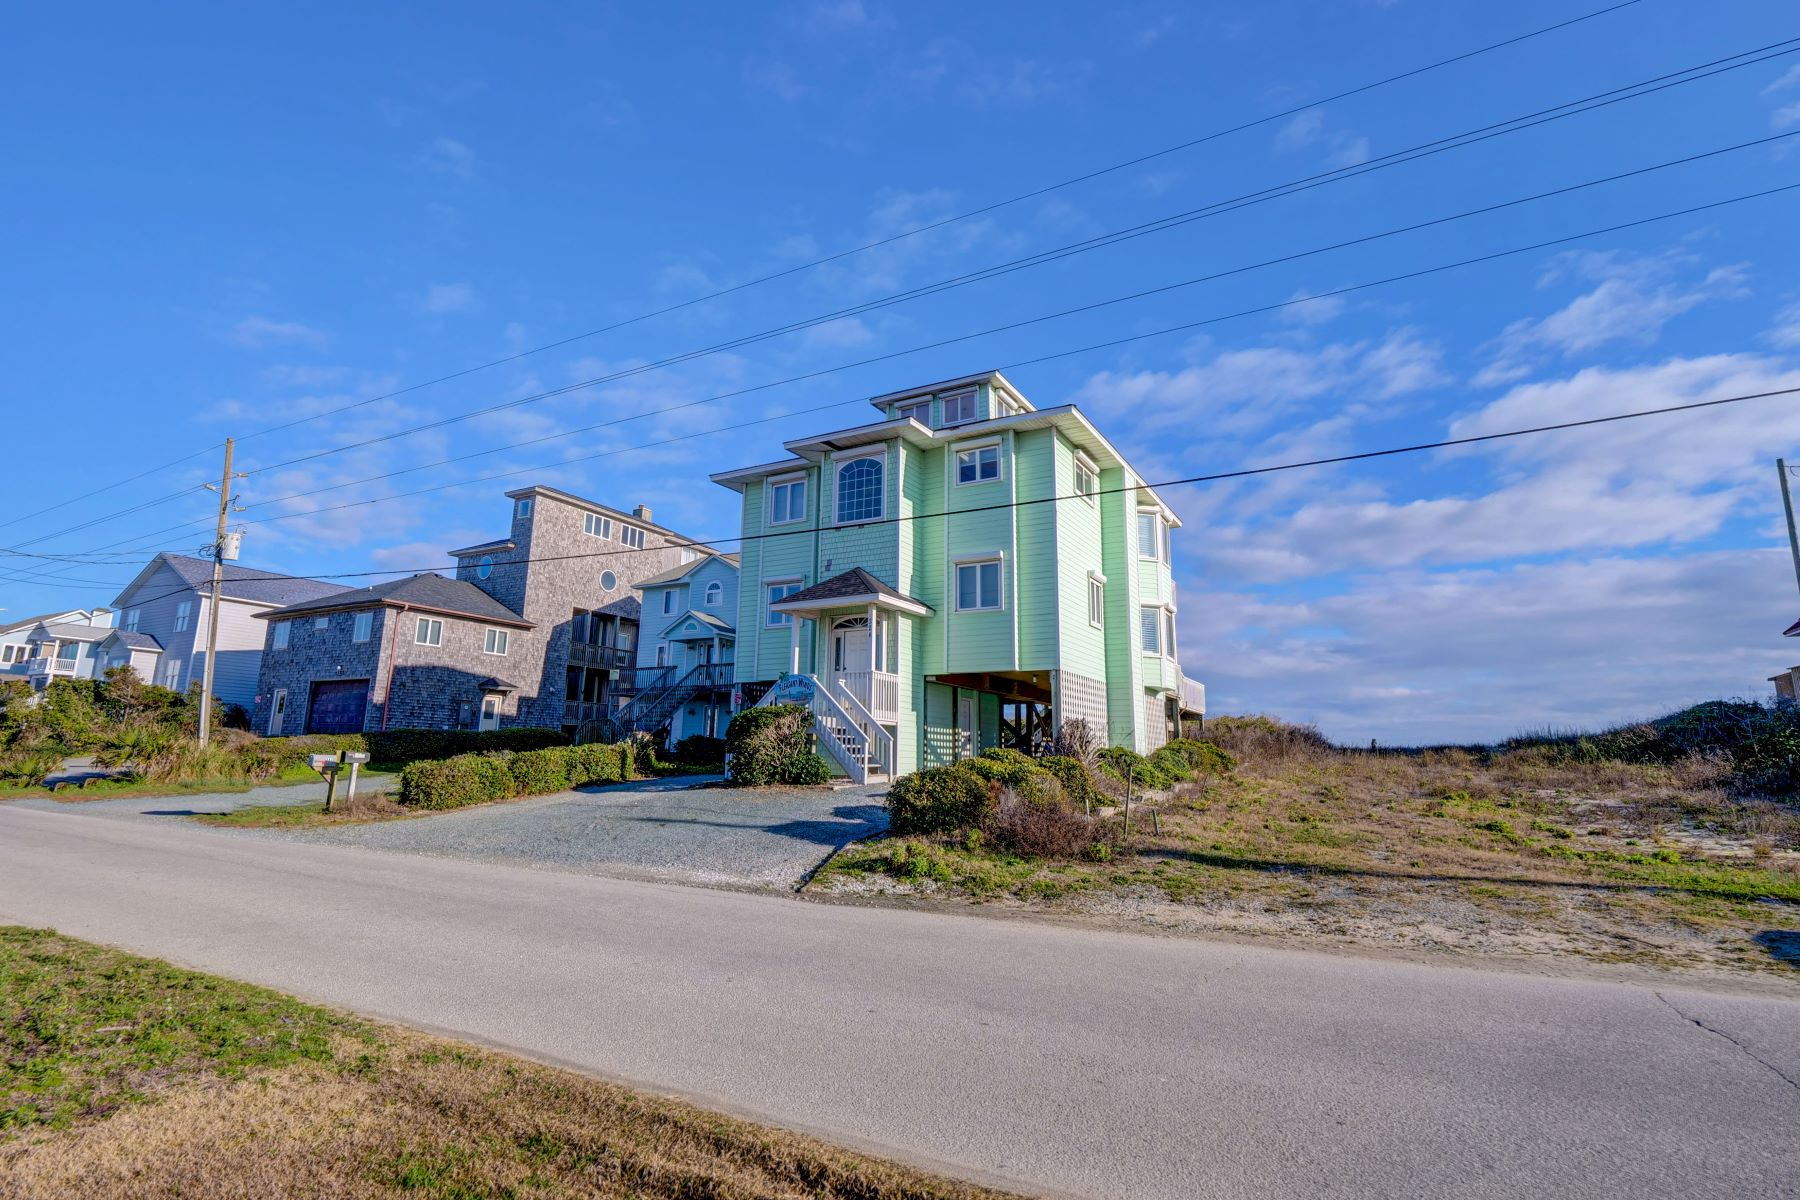 Single Family Homes for Active at Oceanfront Family Beach Home 328 N Shore Drive Surf City, North Carolina 28445 United States